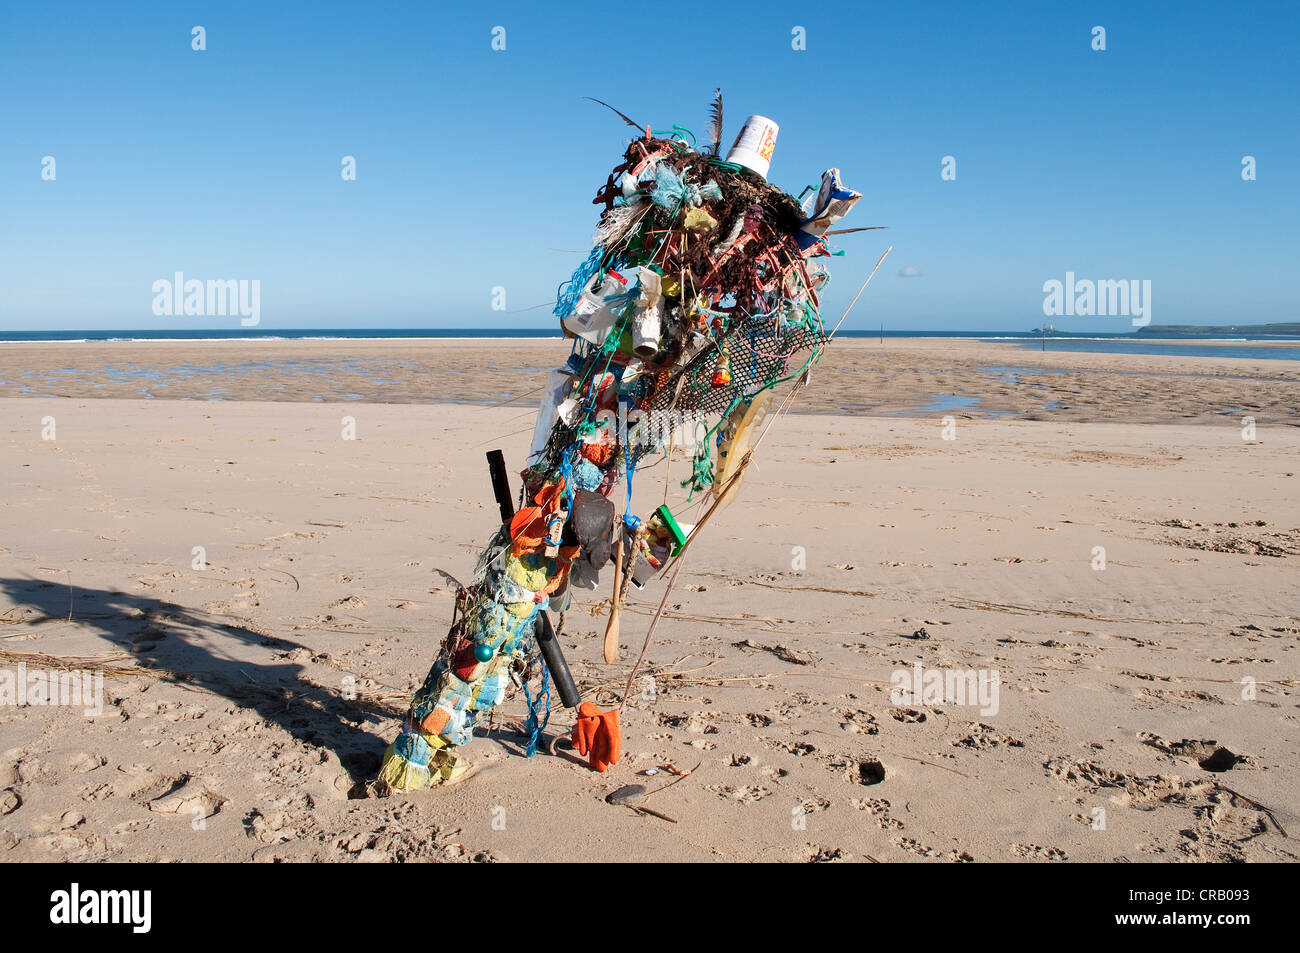 A sculpture of waste items found on a beach in cornwall, uk - Stock Image